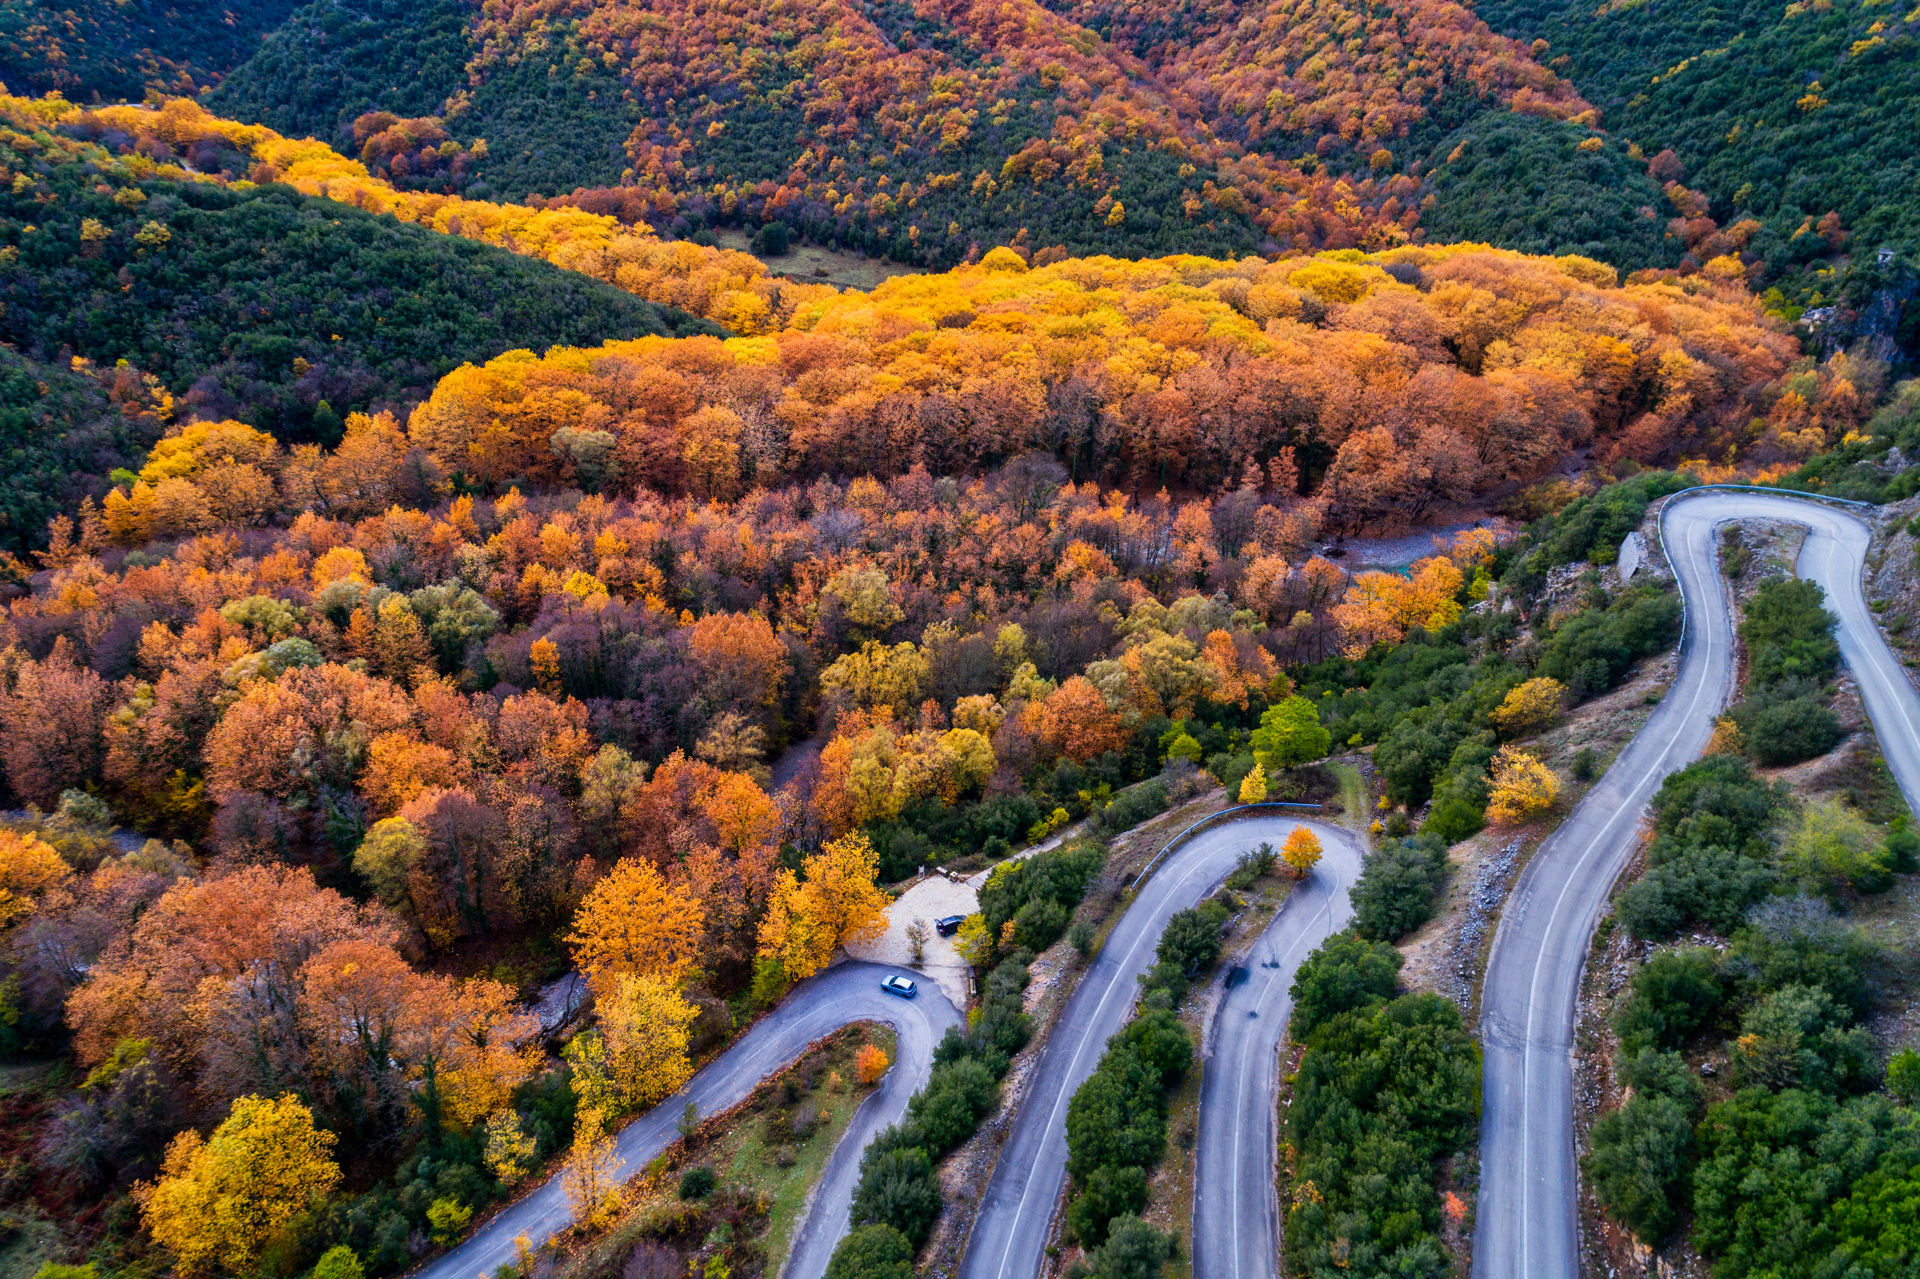 Aerial view of the the Vikos Gorge in the autumn